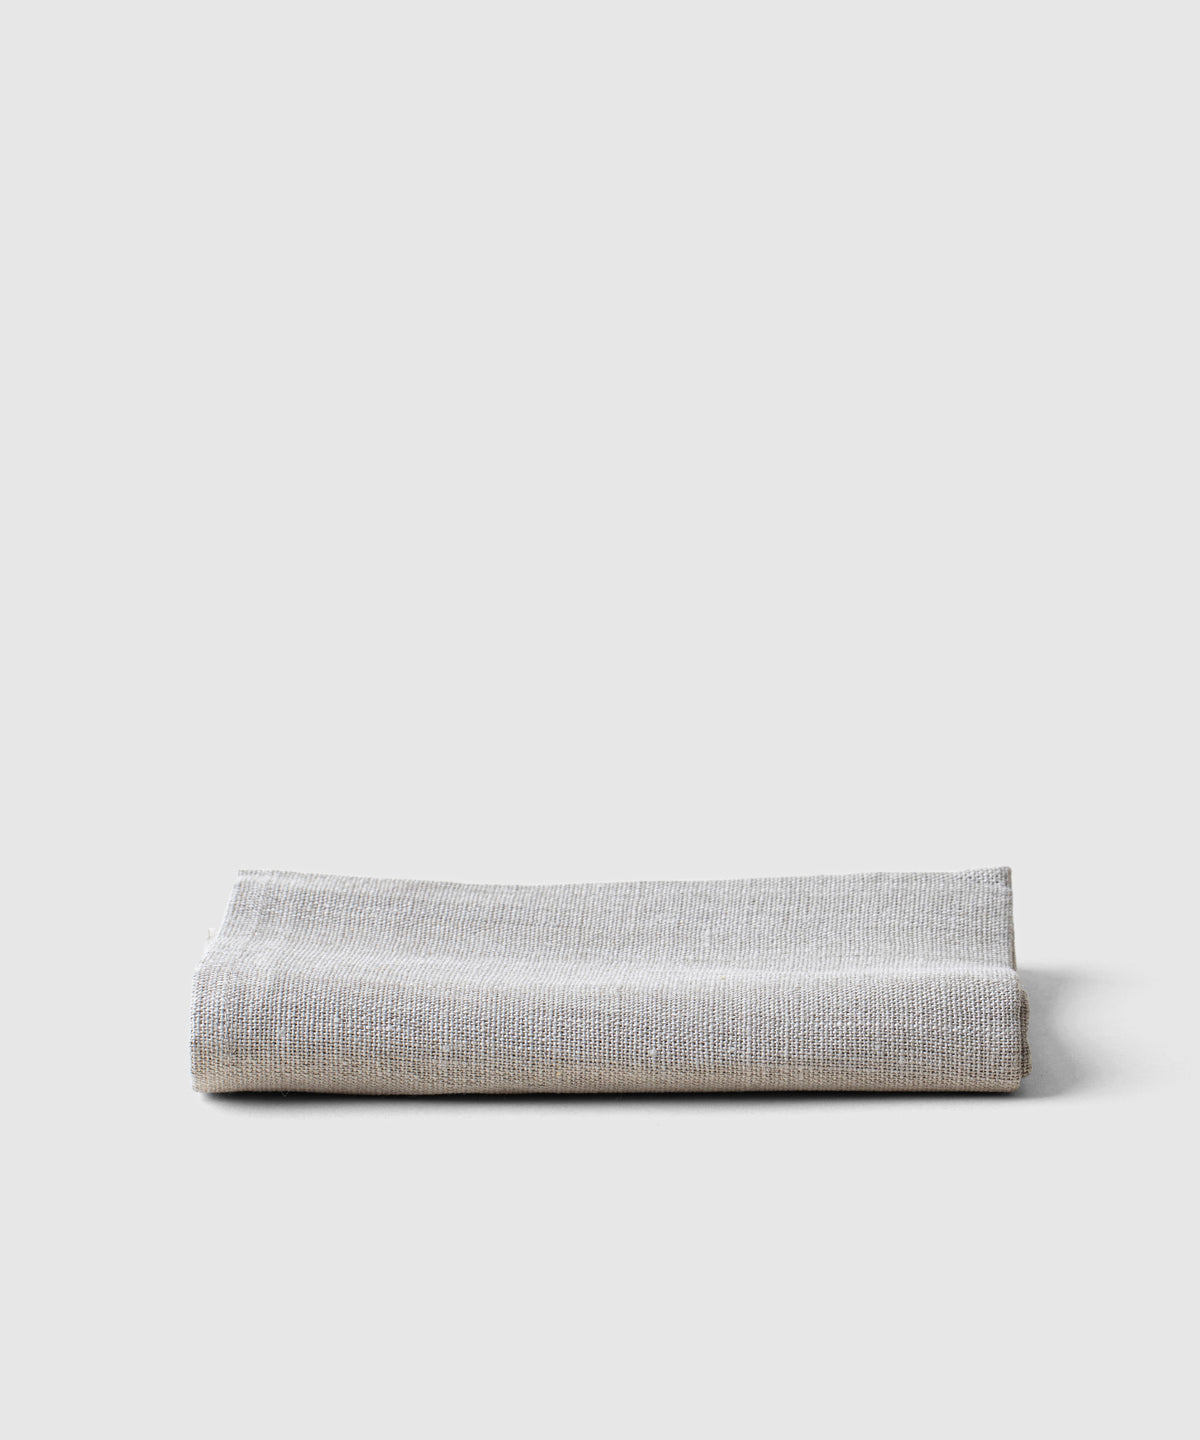 Naturally Antibacterial Kitchen Towel in Pure Linen